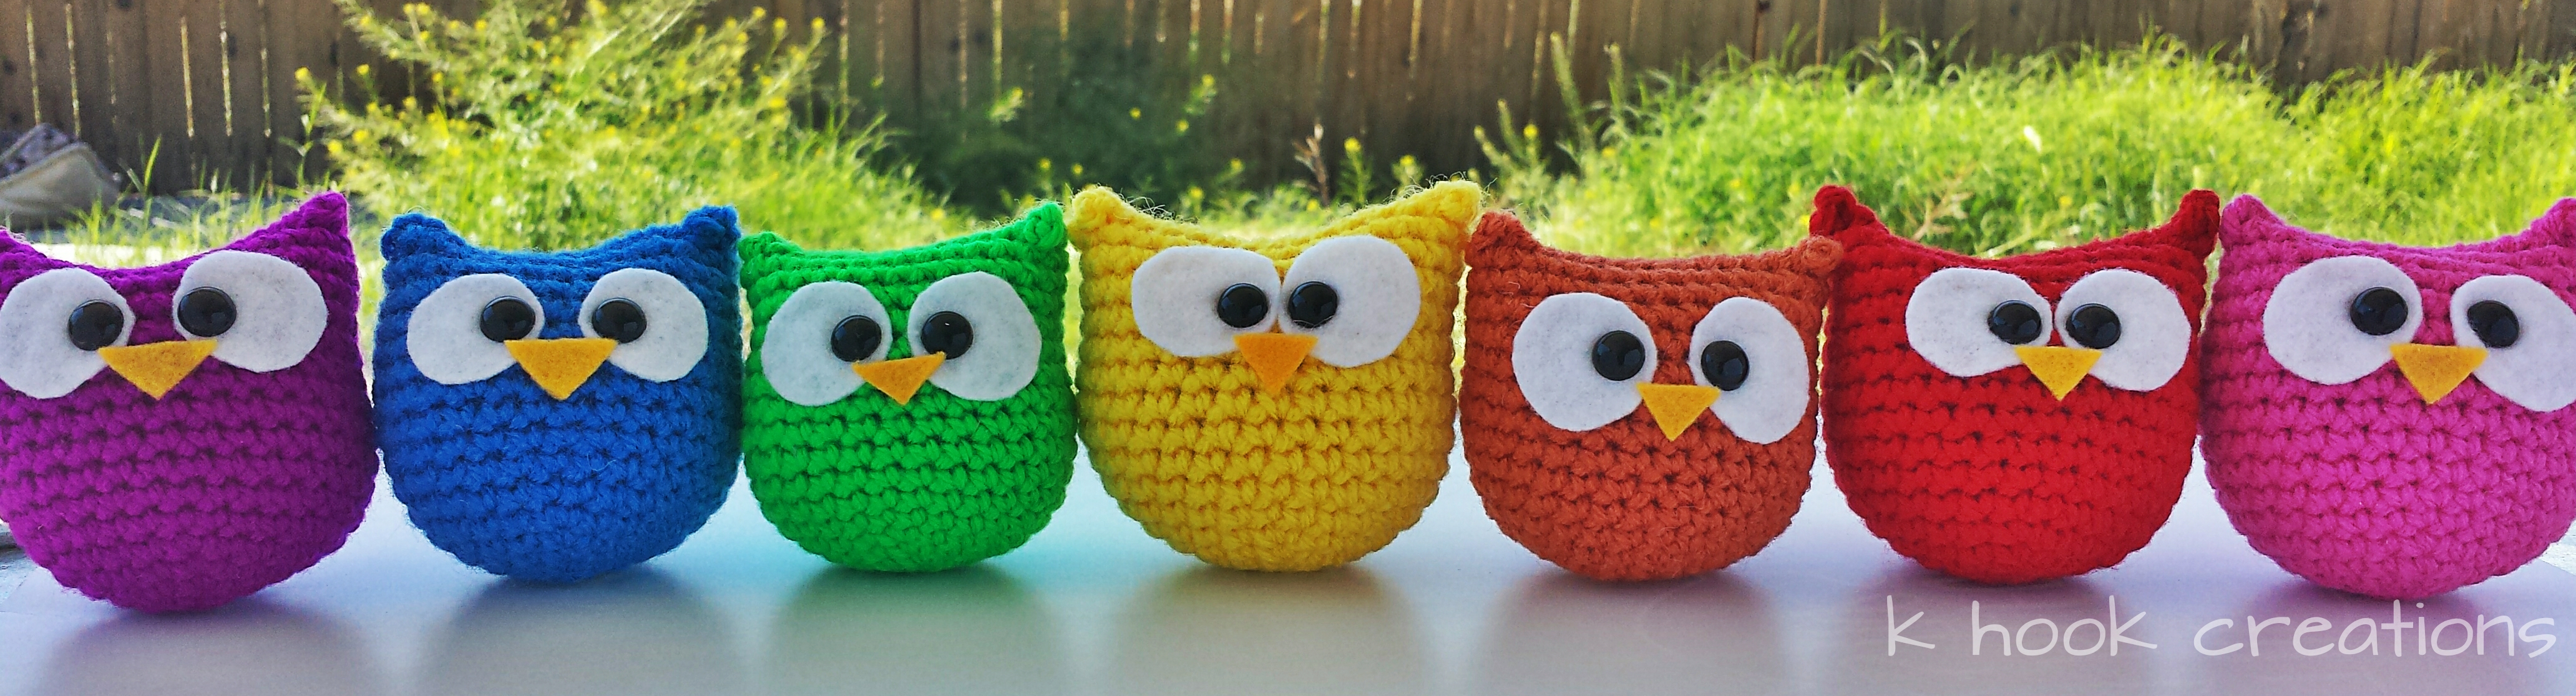 Free Crochet Pattern Small Owl : Crochet Owl Pattern ? K Hook Creations